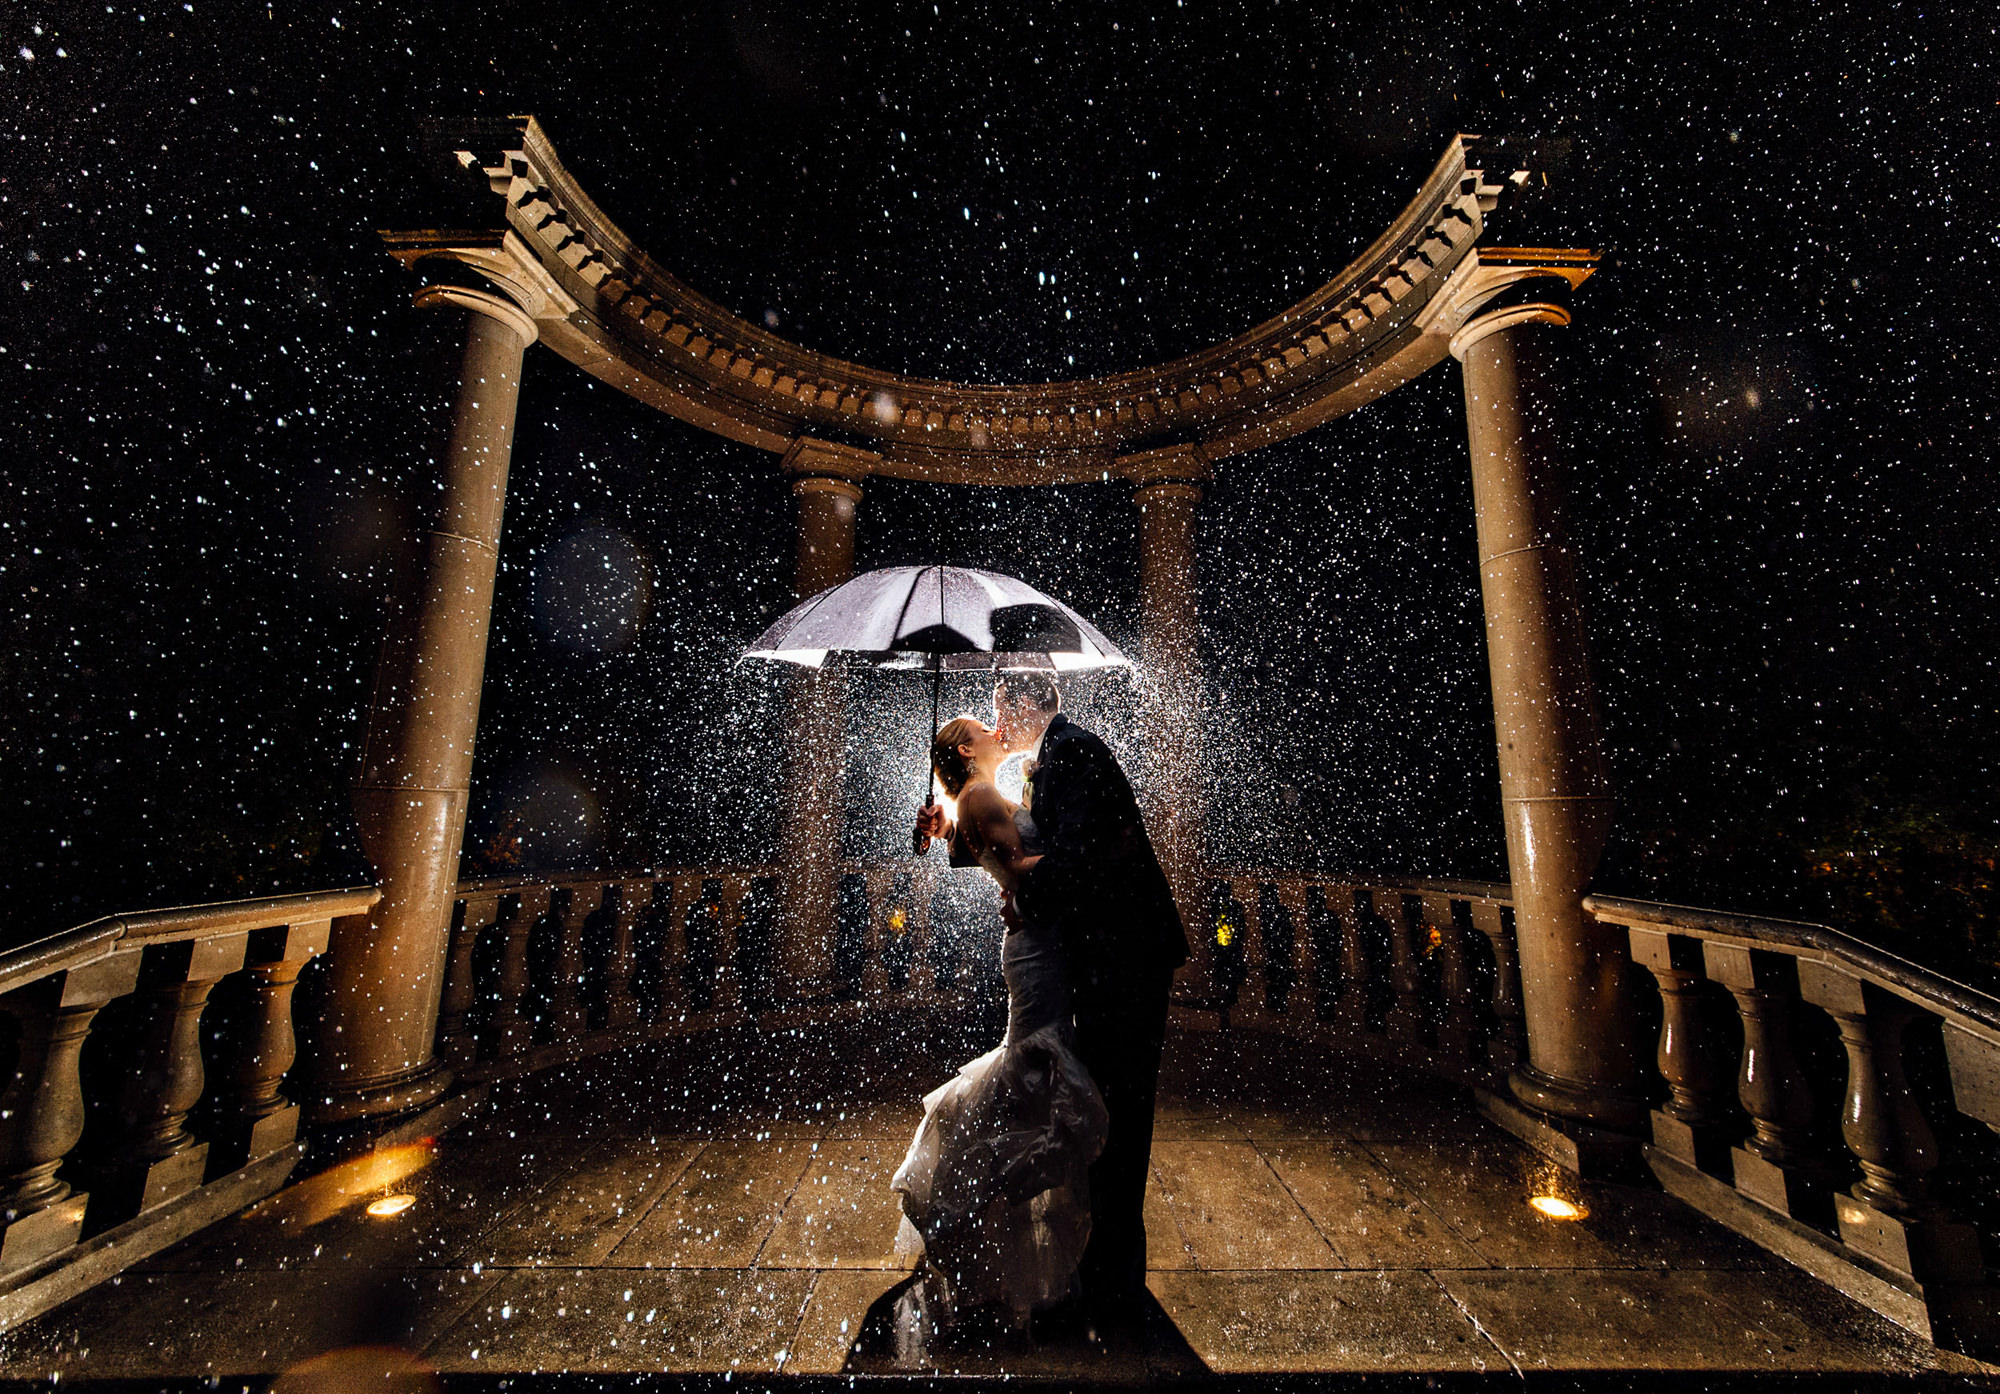 Dramatic Photo In The Rain Of Couple Under Umbrella With Flash By The Brenizers